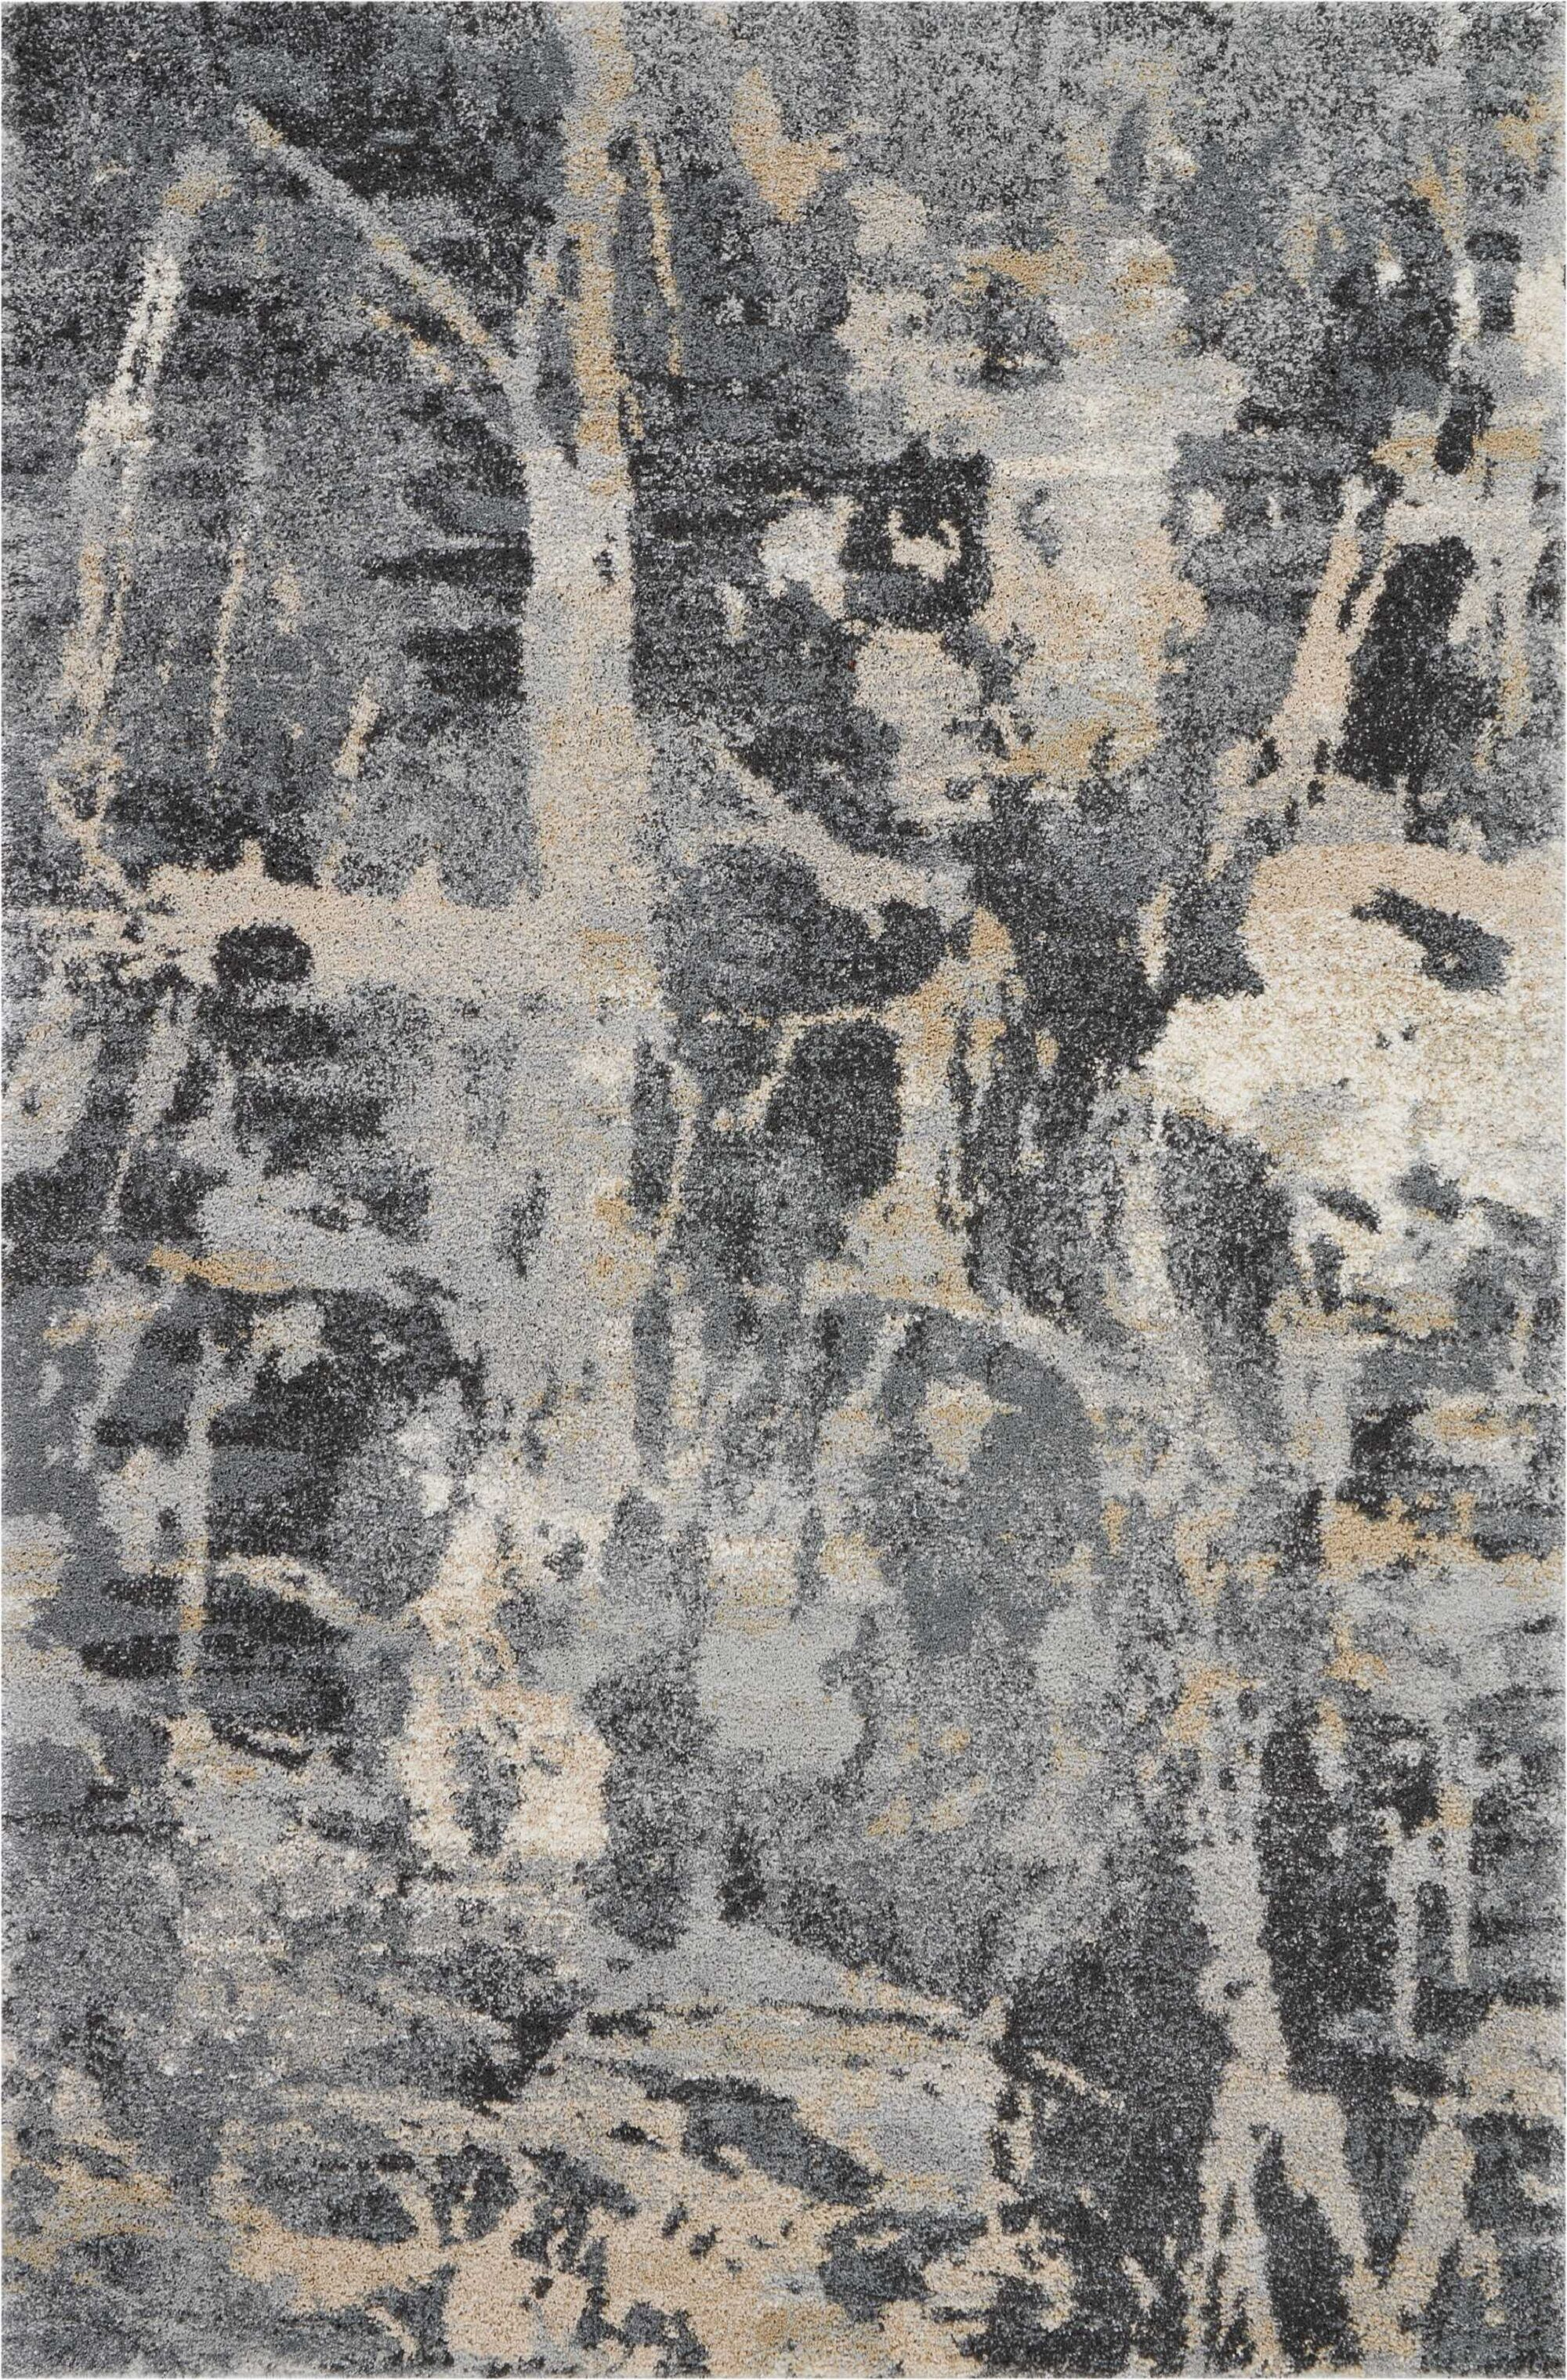 Bellock Abstract Gray/Beige Area Rug Rug Size: Rectangle 4' x 6'